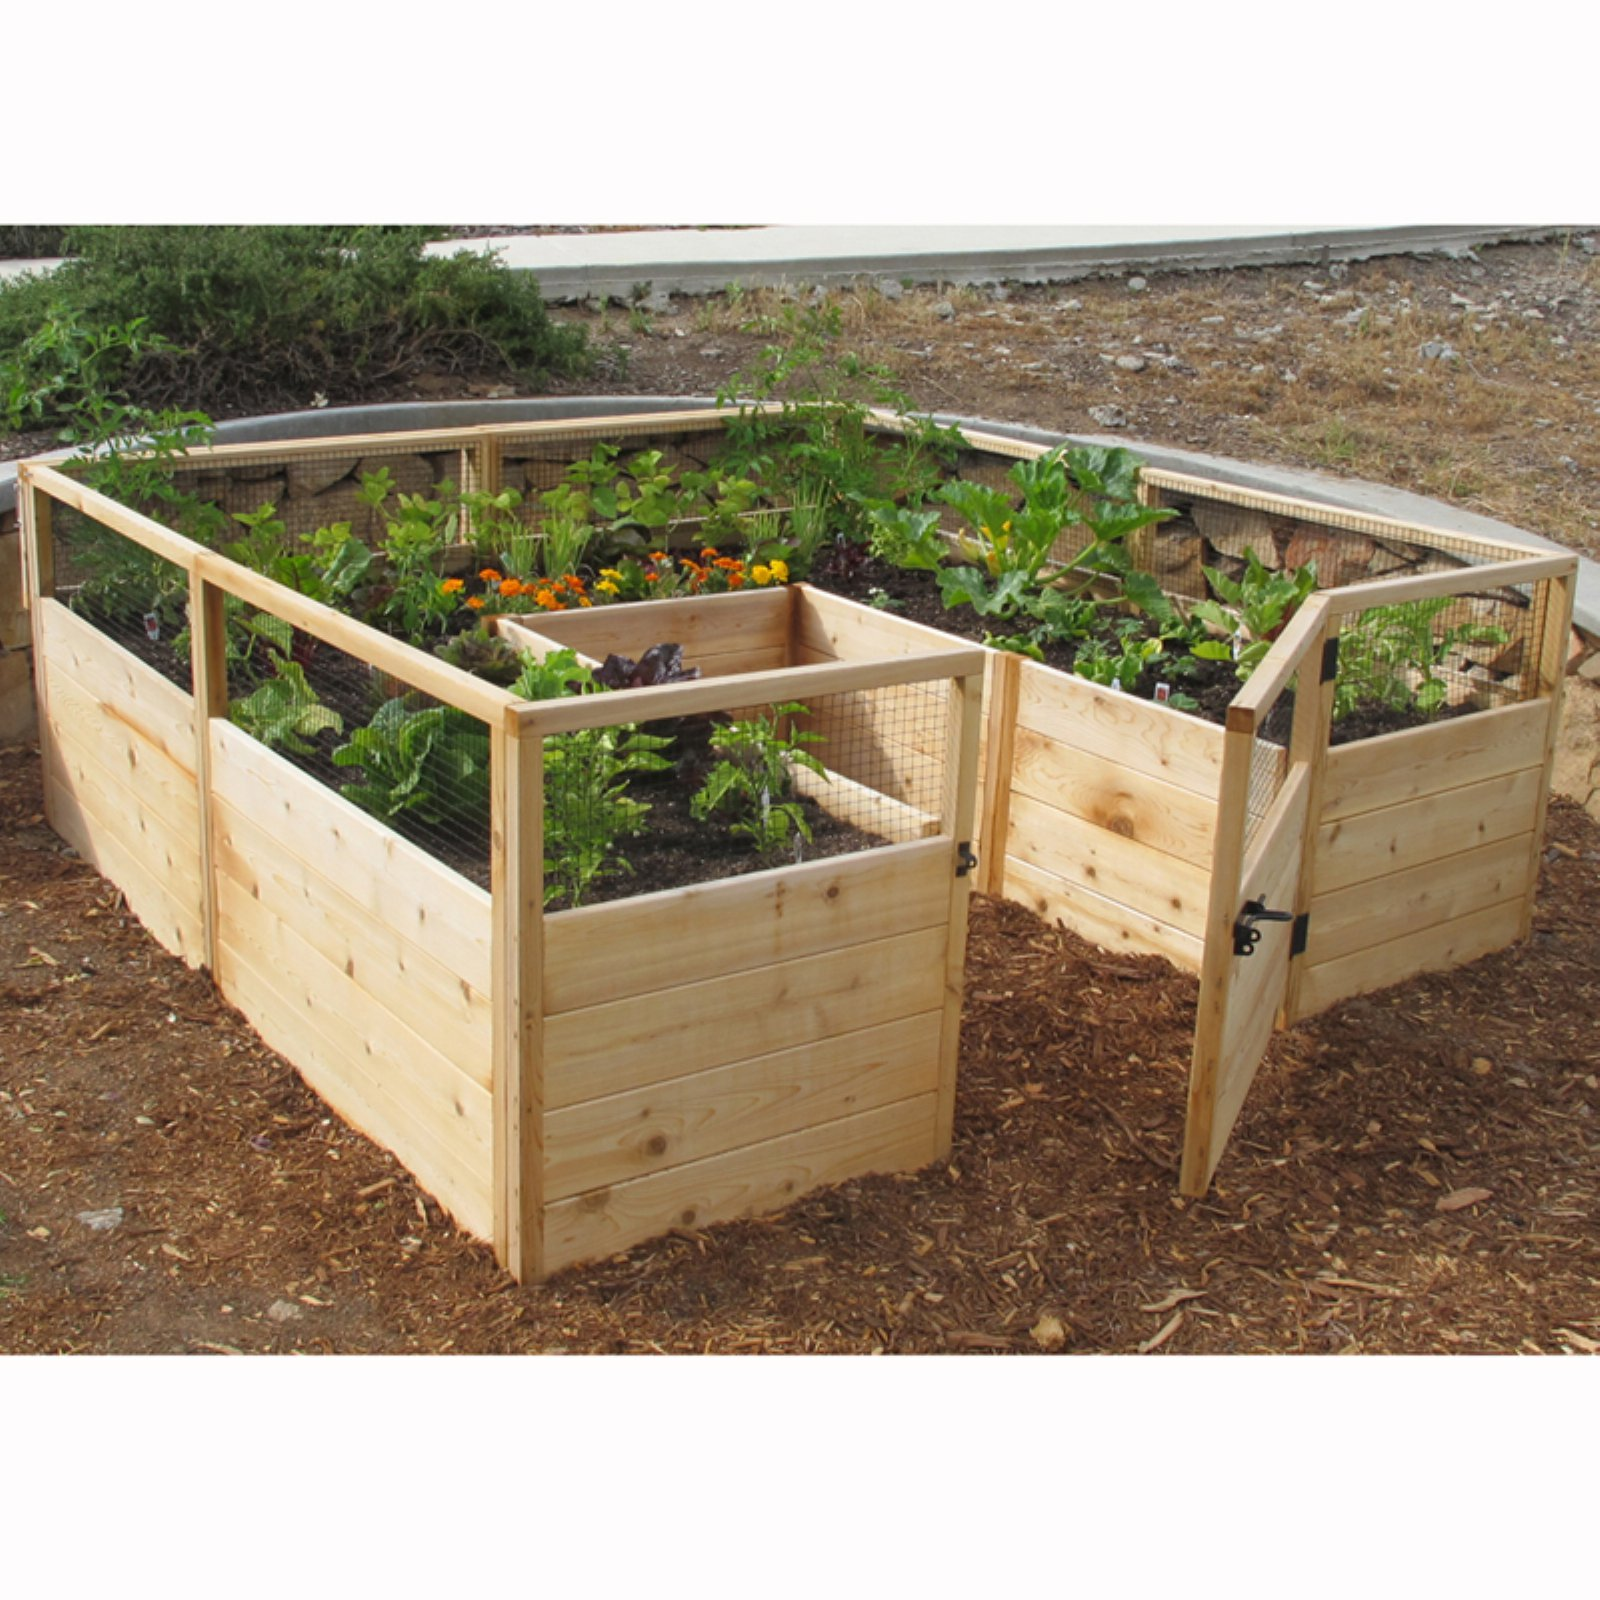 Outdoor Living Today Raised Cedar Garden Bed - 8 x 8 ft.